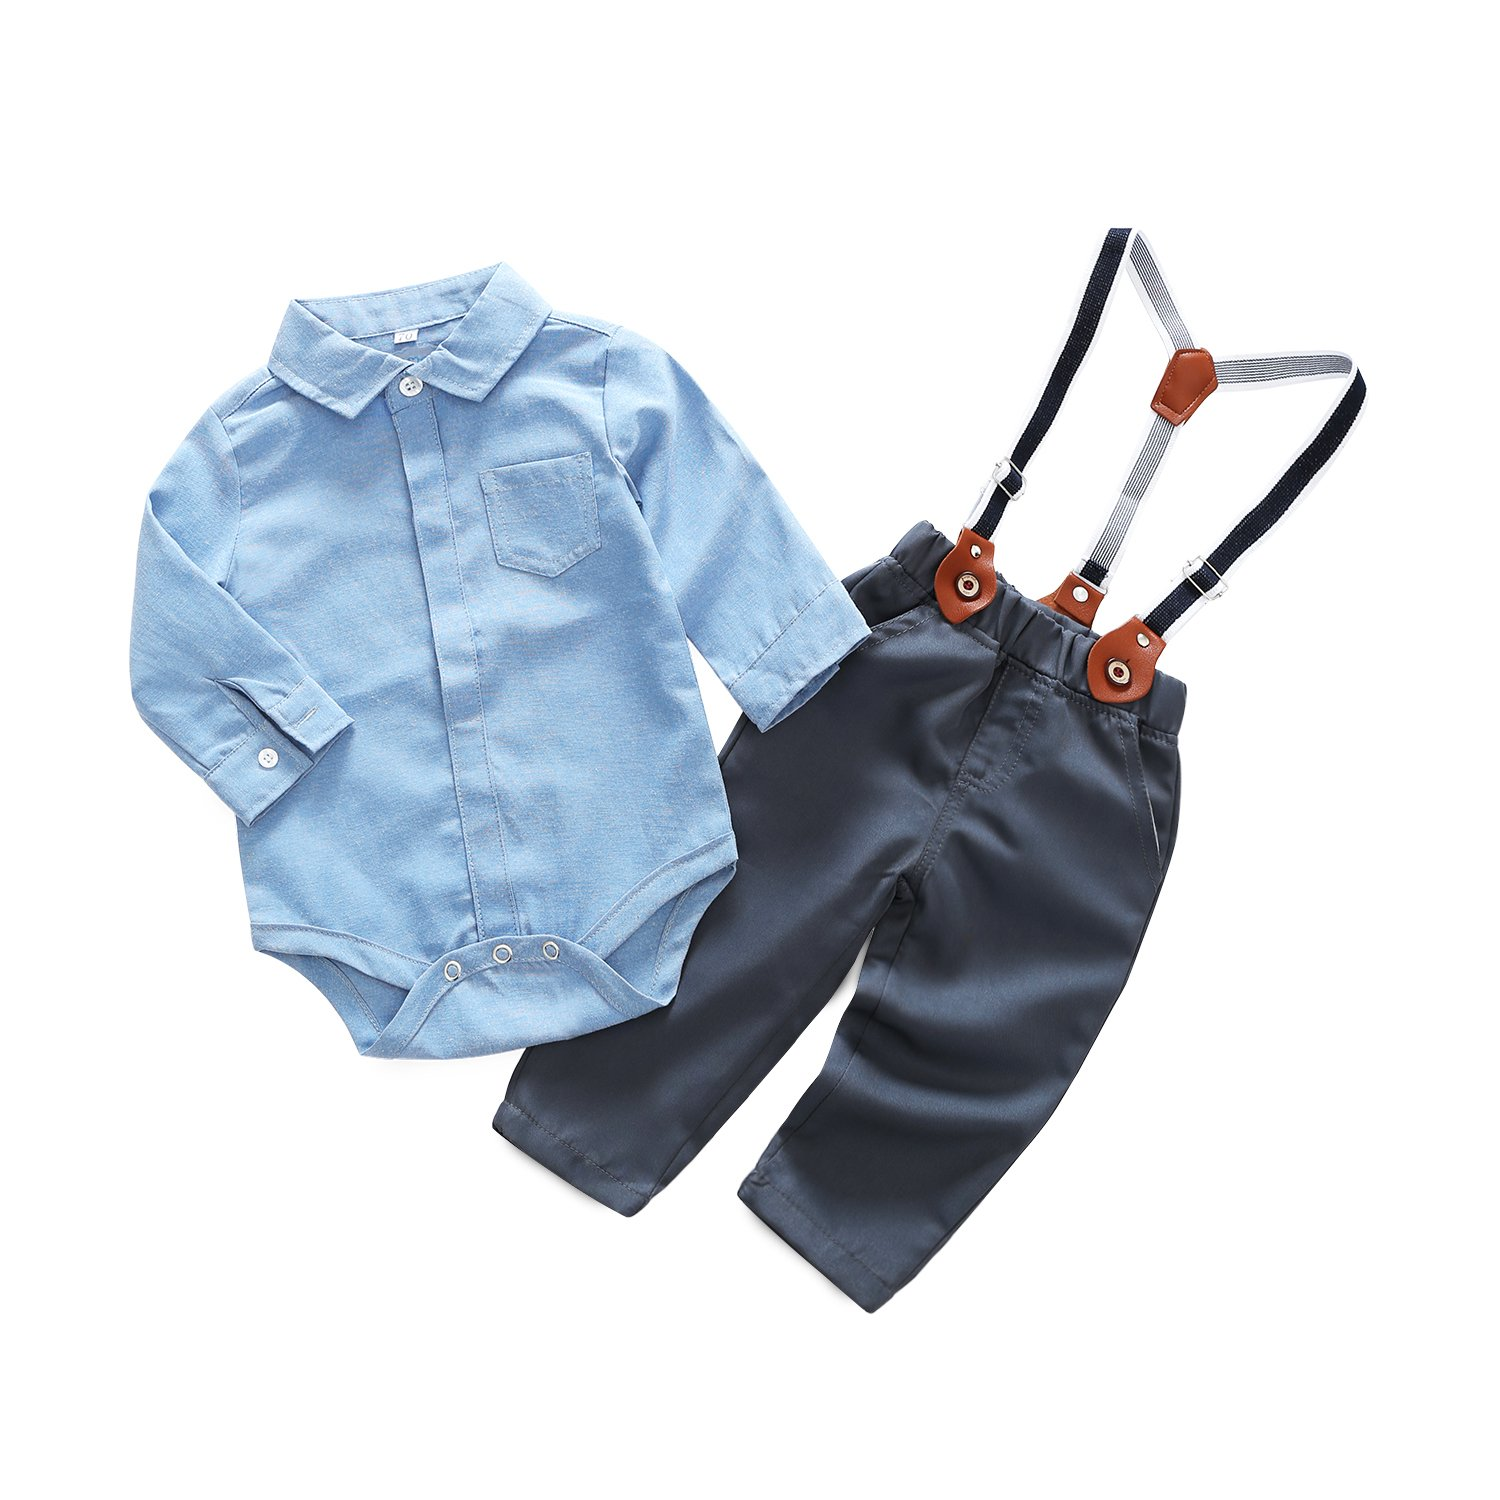 Baby Boy Casual Suit 2pcs Cotton Long Sleeve Solid Color Onesie Shirt Pant With Suspenders Outfits Clothes Set (18/24M)